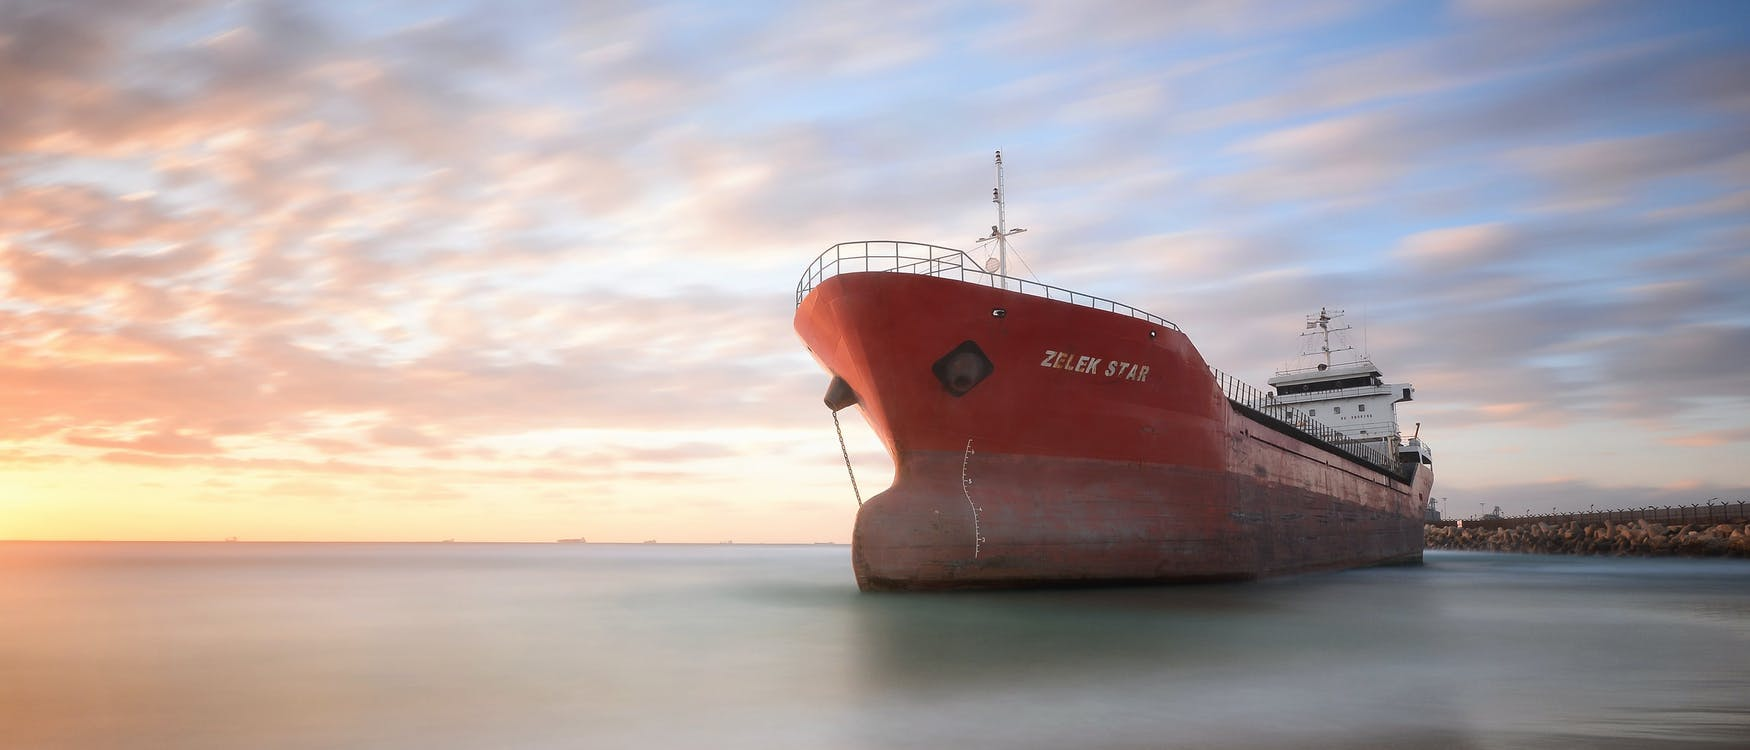 A photograph of a cargo vessel stationary in a bay